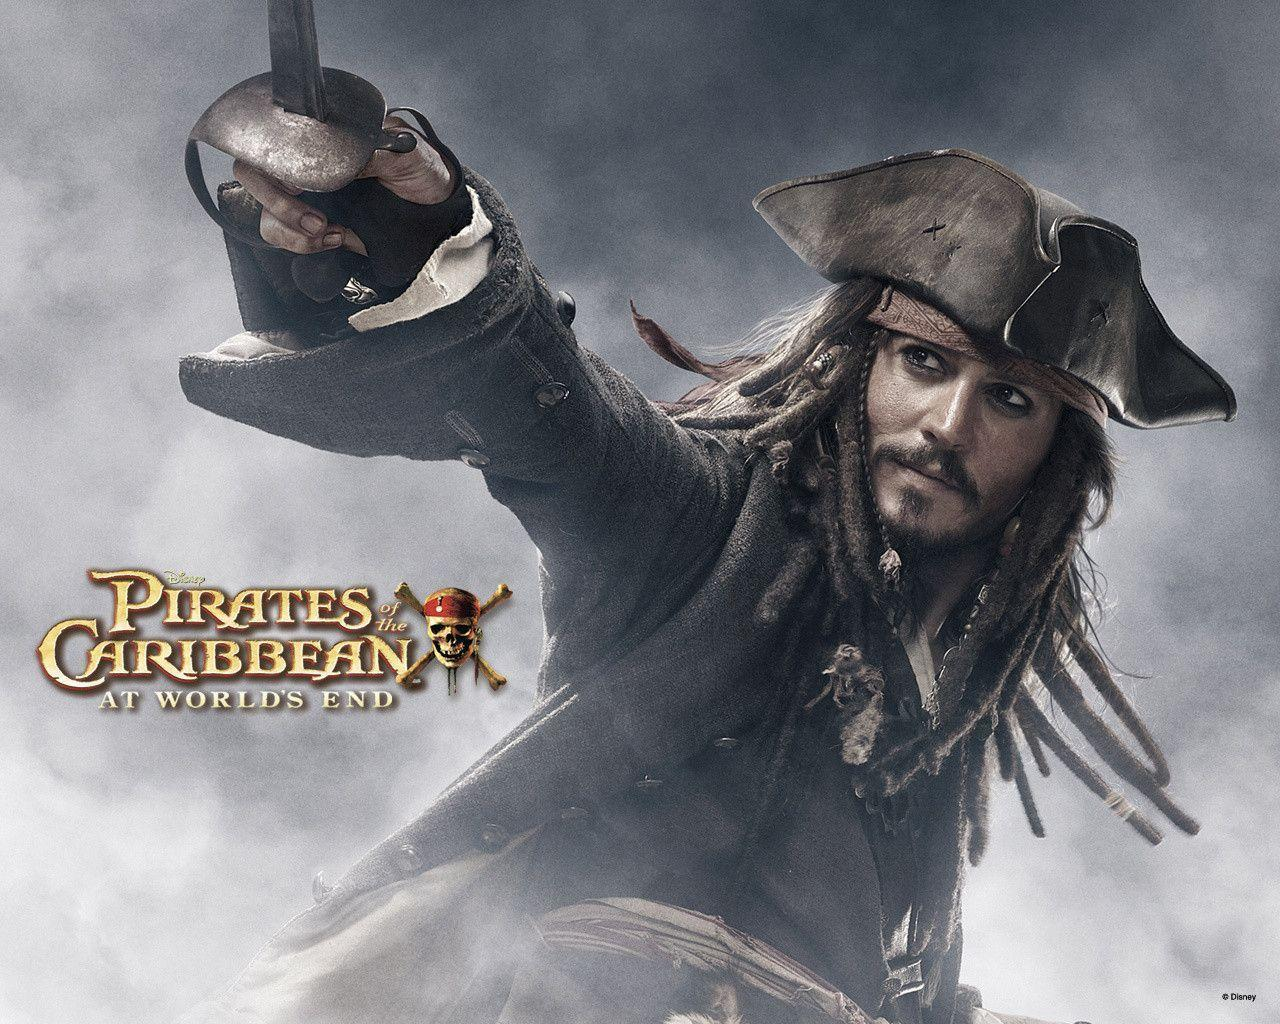 Jack Sparrow - Captain Jack Sparrow Wallpaper (7793349) - Fanpop